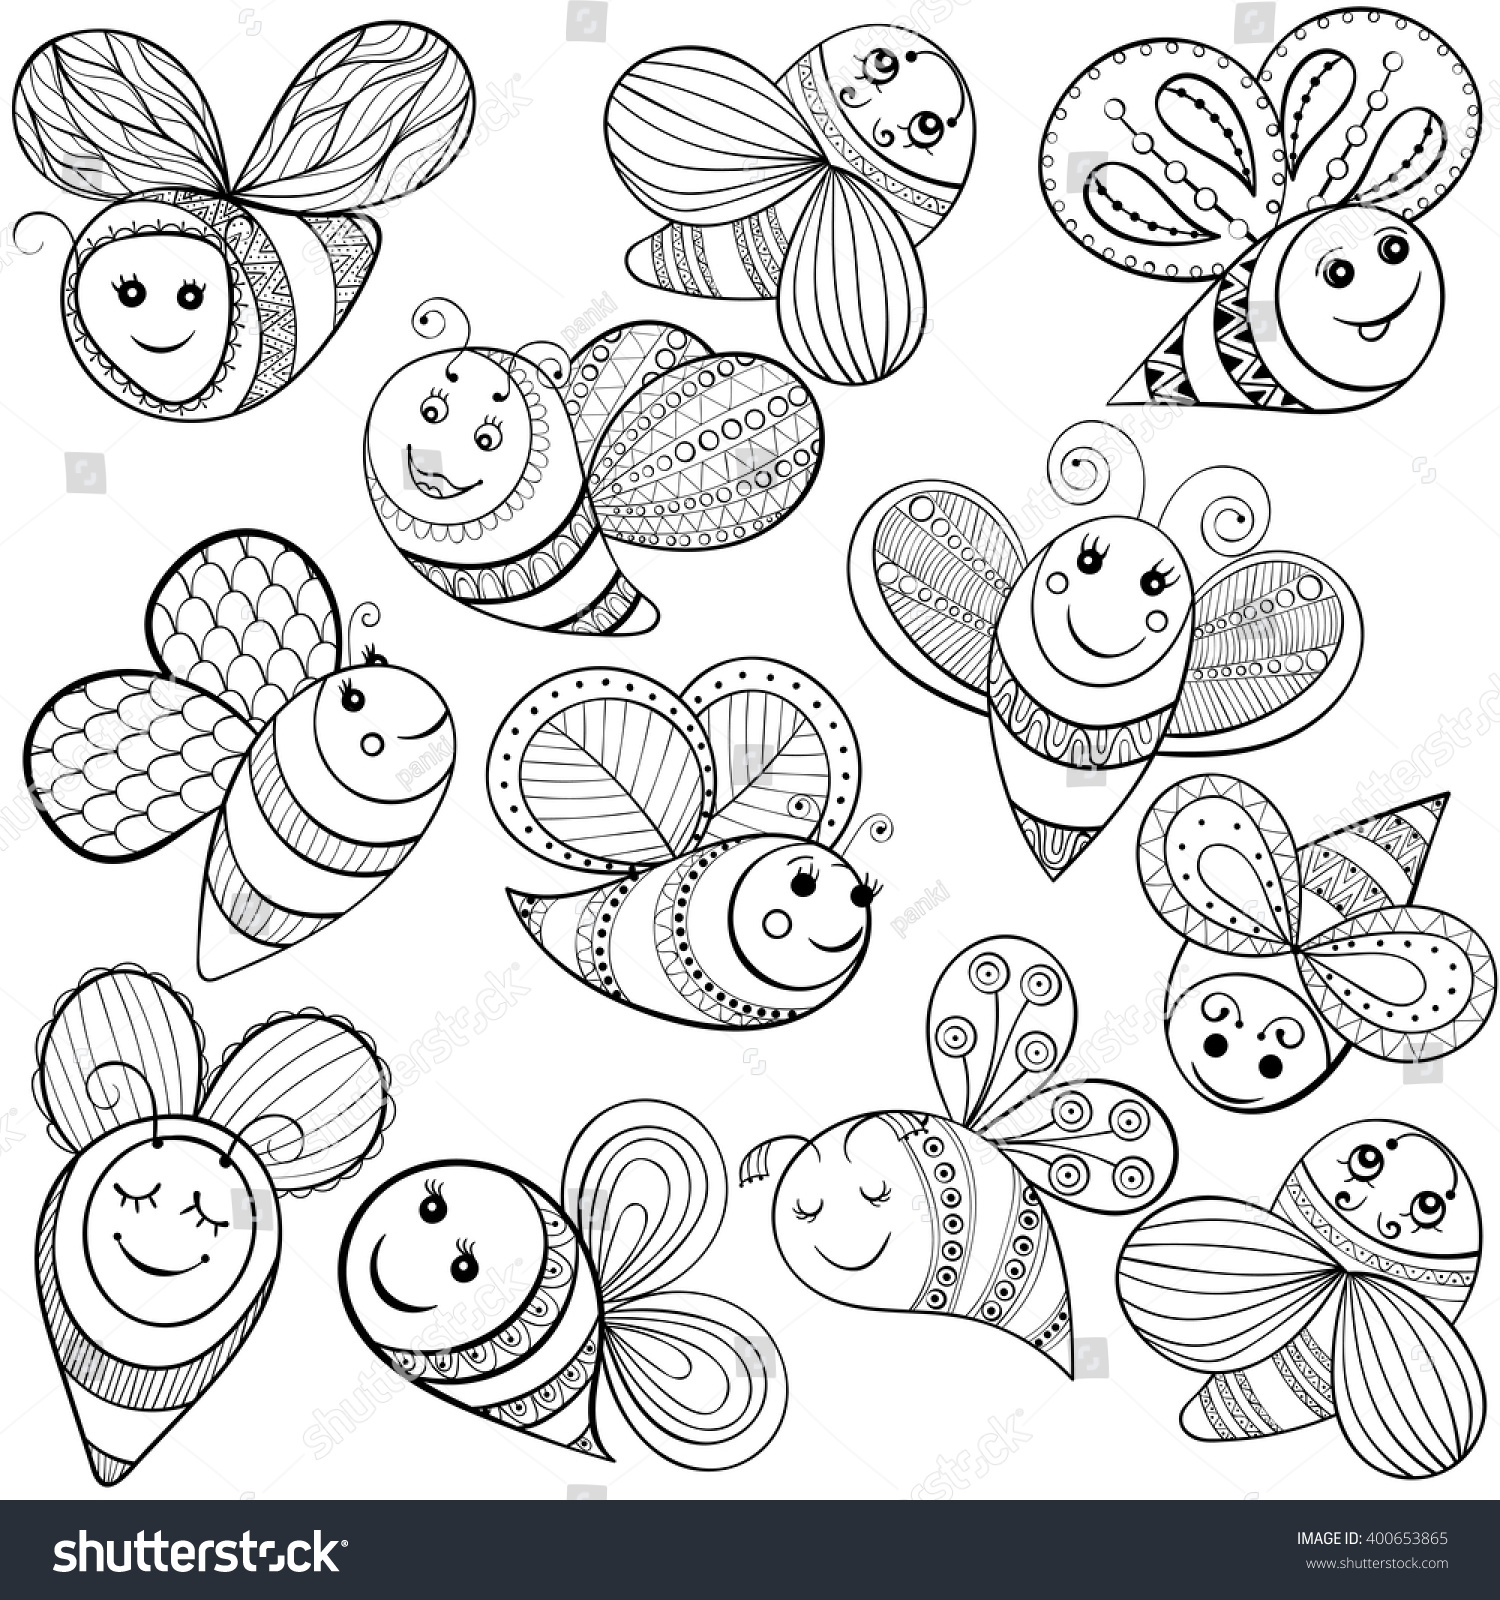 Vector Bees Adult Coloring Page Hand Stock Vector